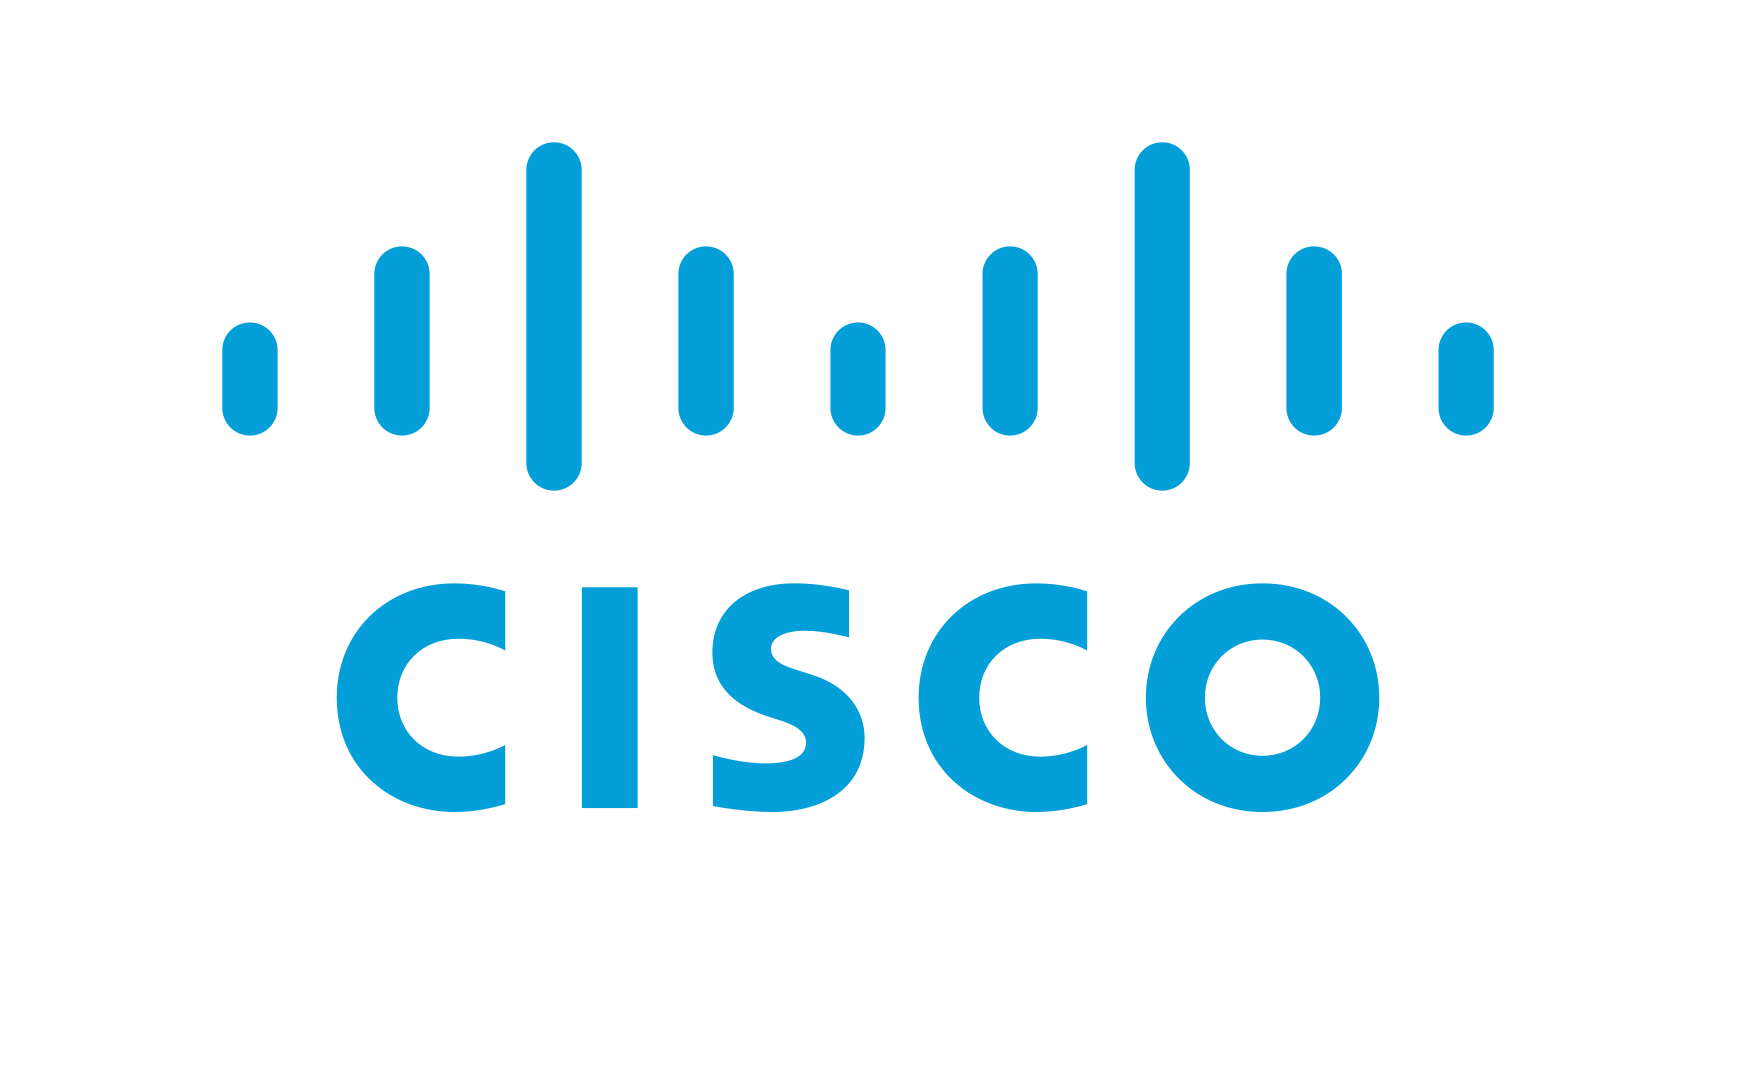 Management Cisco Ibm Business Silicon Systems Logo PNG Image